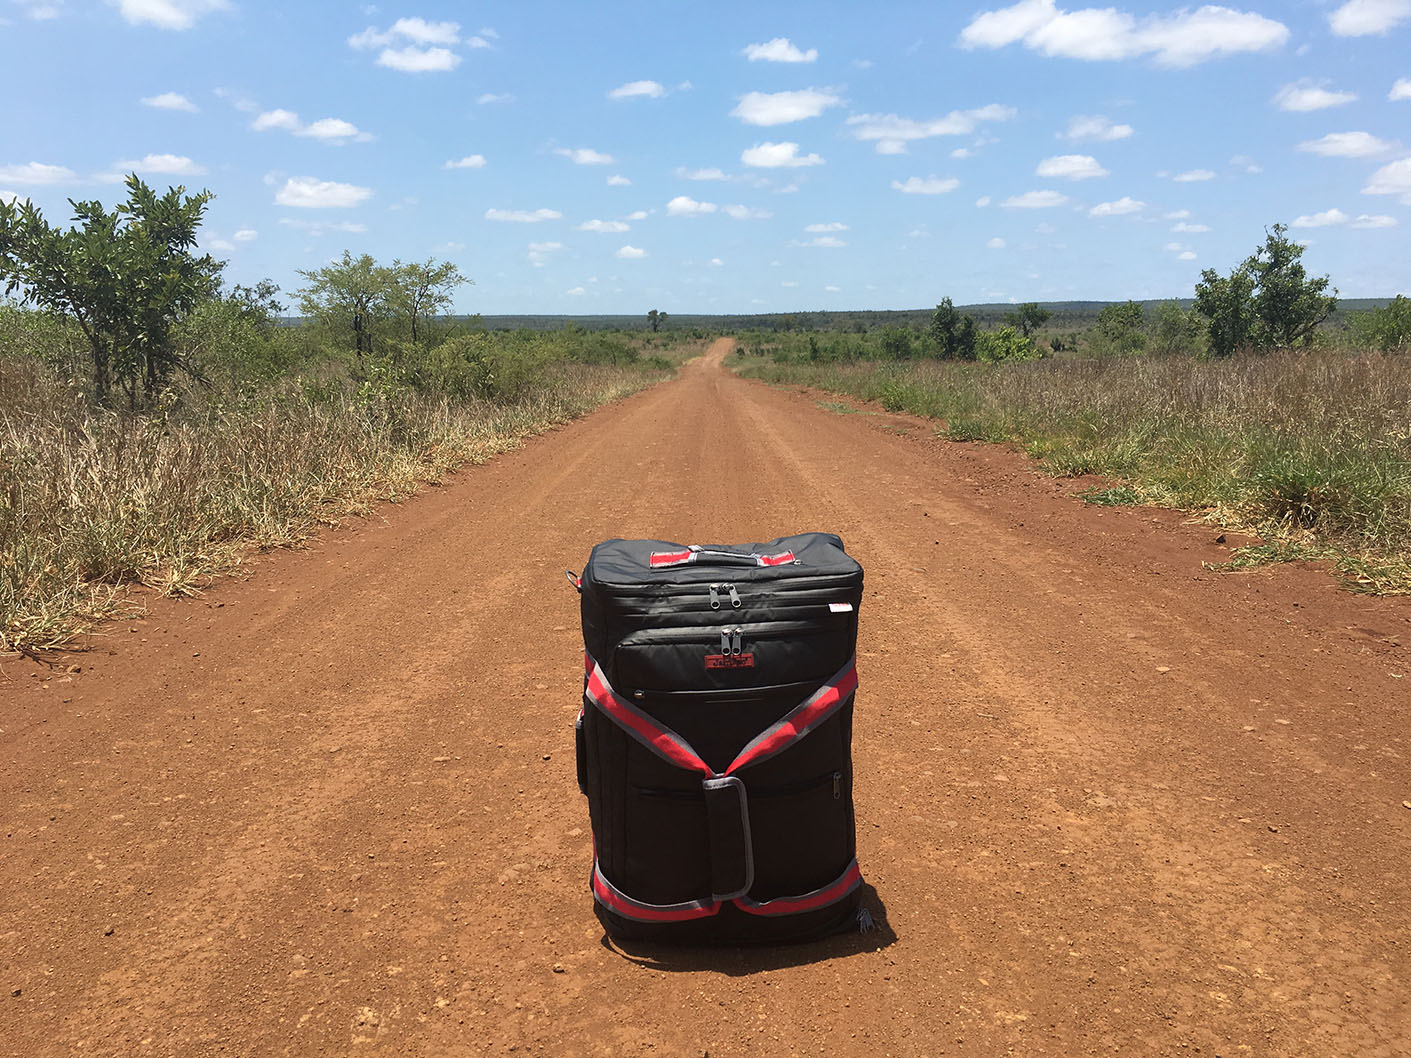 Out in the bush can be a lonely place & our JamPac® is having some good alone time on its journey. We all need that sometimes. Get your own LeanPac® products, they're great company for lone travelling